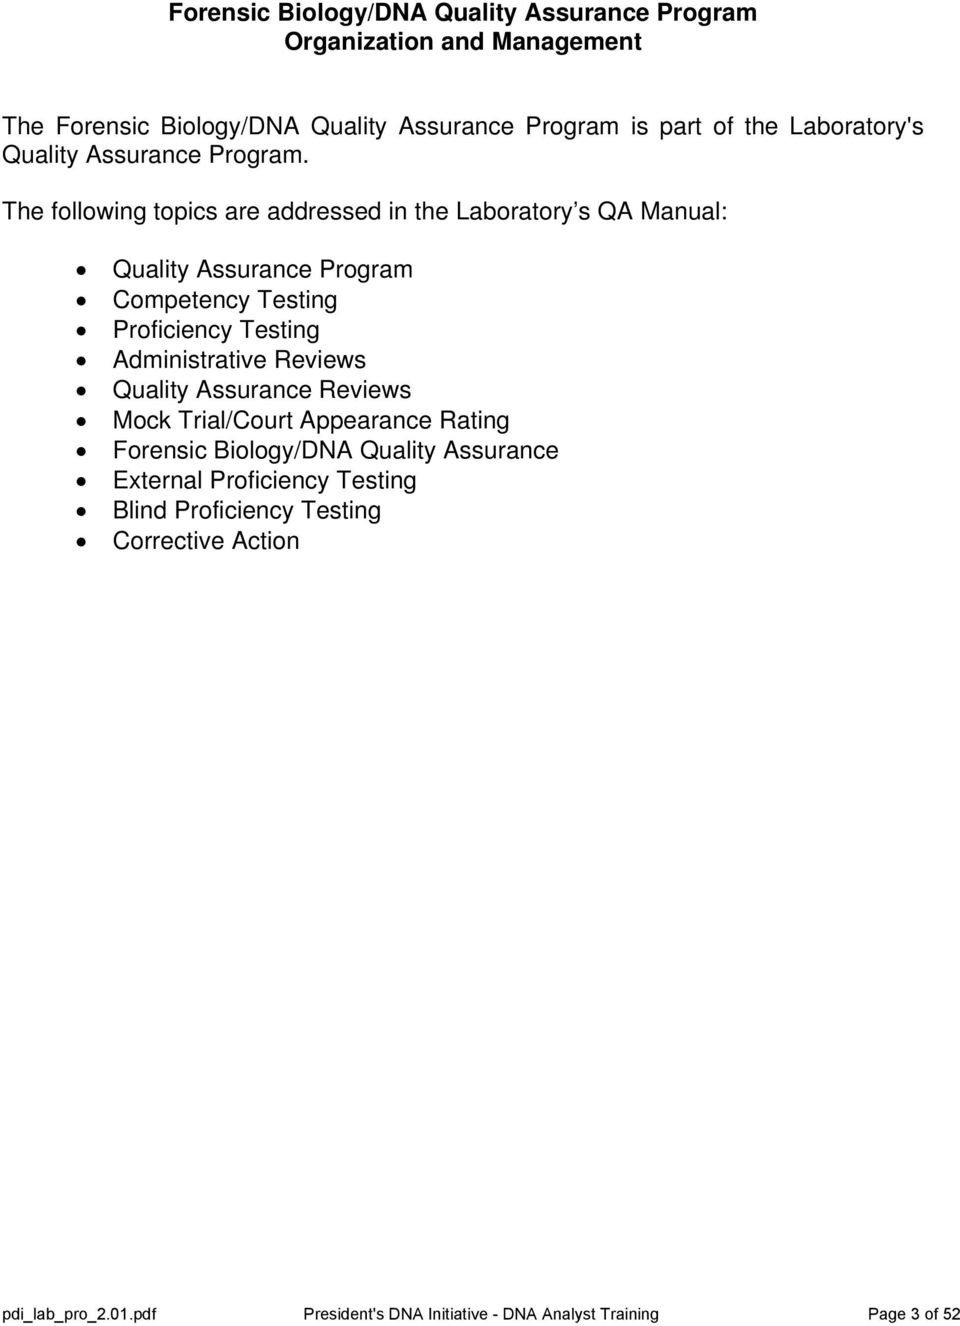 Dna Analyst Training Laboratory Training Manual Protocol 2 01 Quality Assurance Pdf Free Download